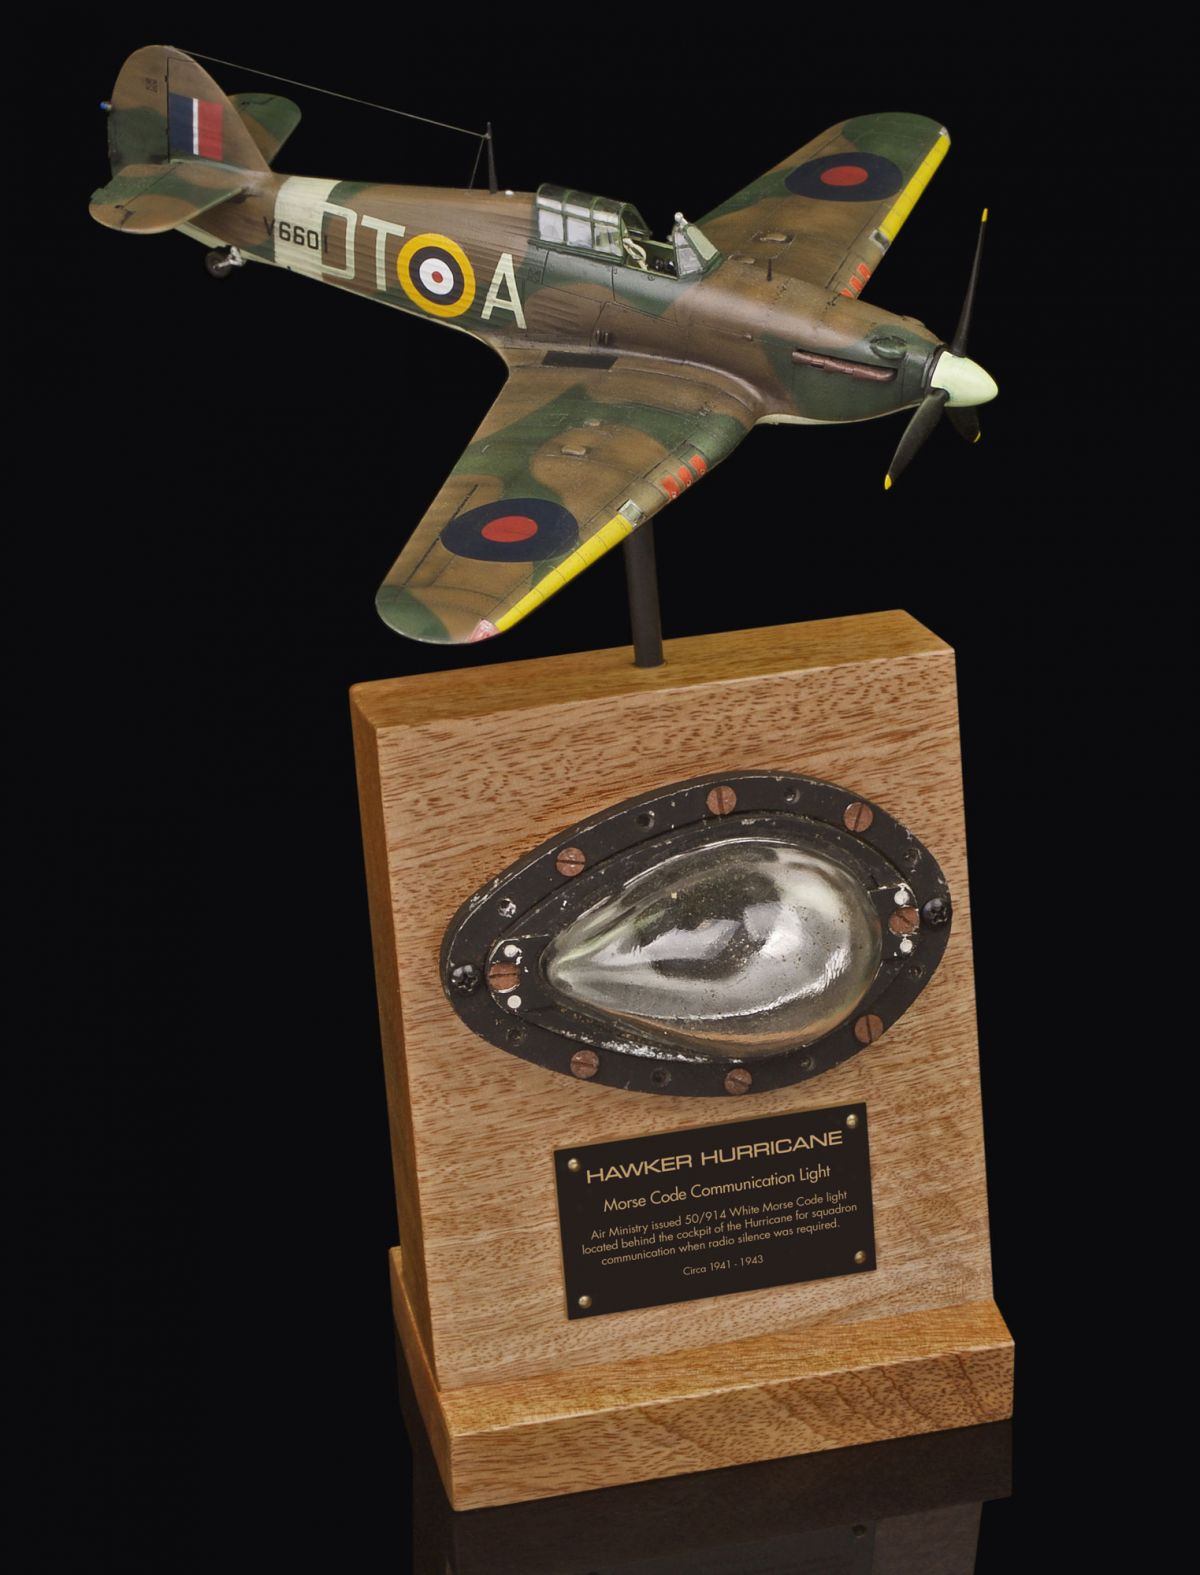 HAWKER HURRICANE MORSE CODE COMMUNICATION LAMP